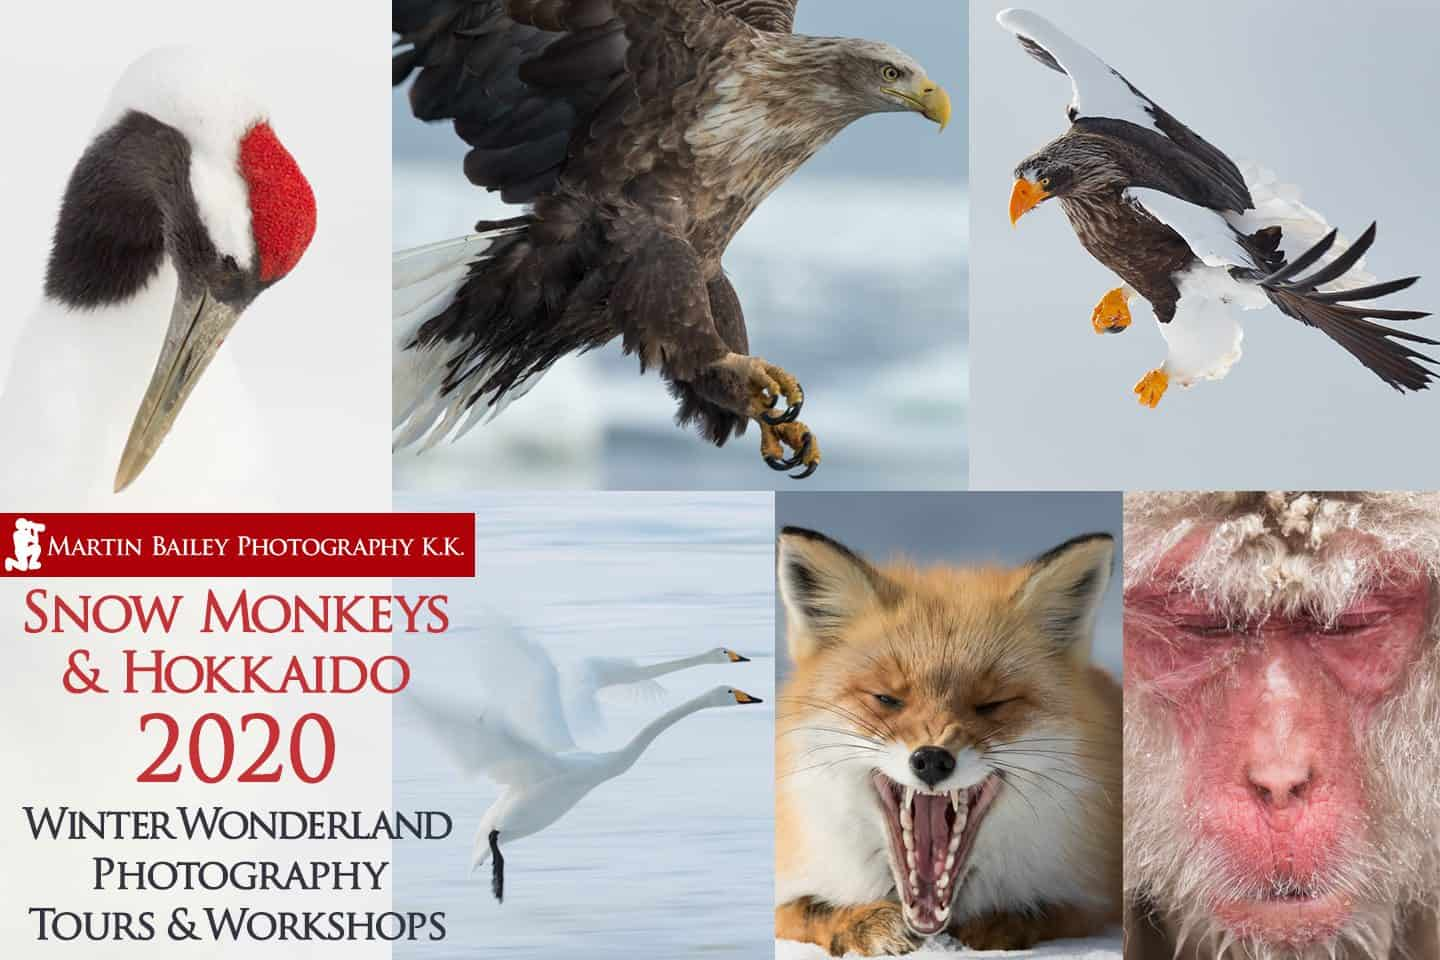 Snow Monkeys & Hokkaido Tour & Workshop 2020